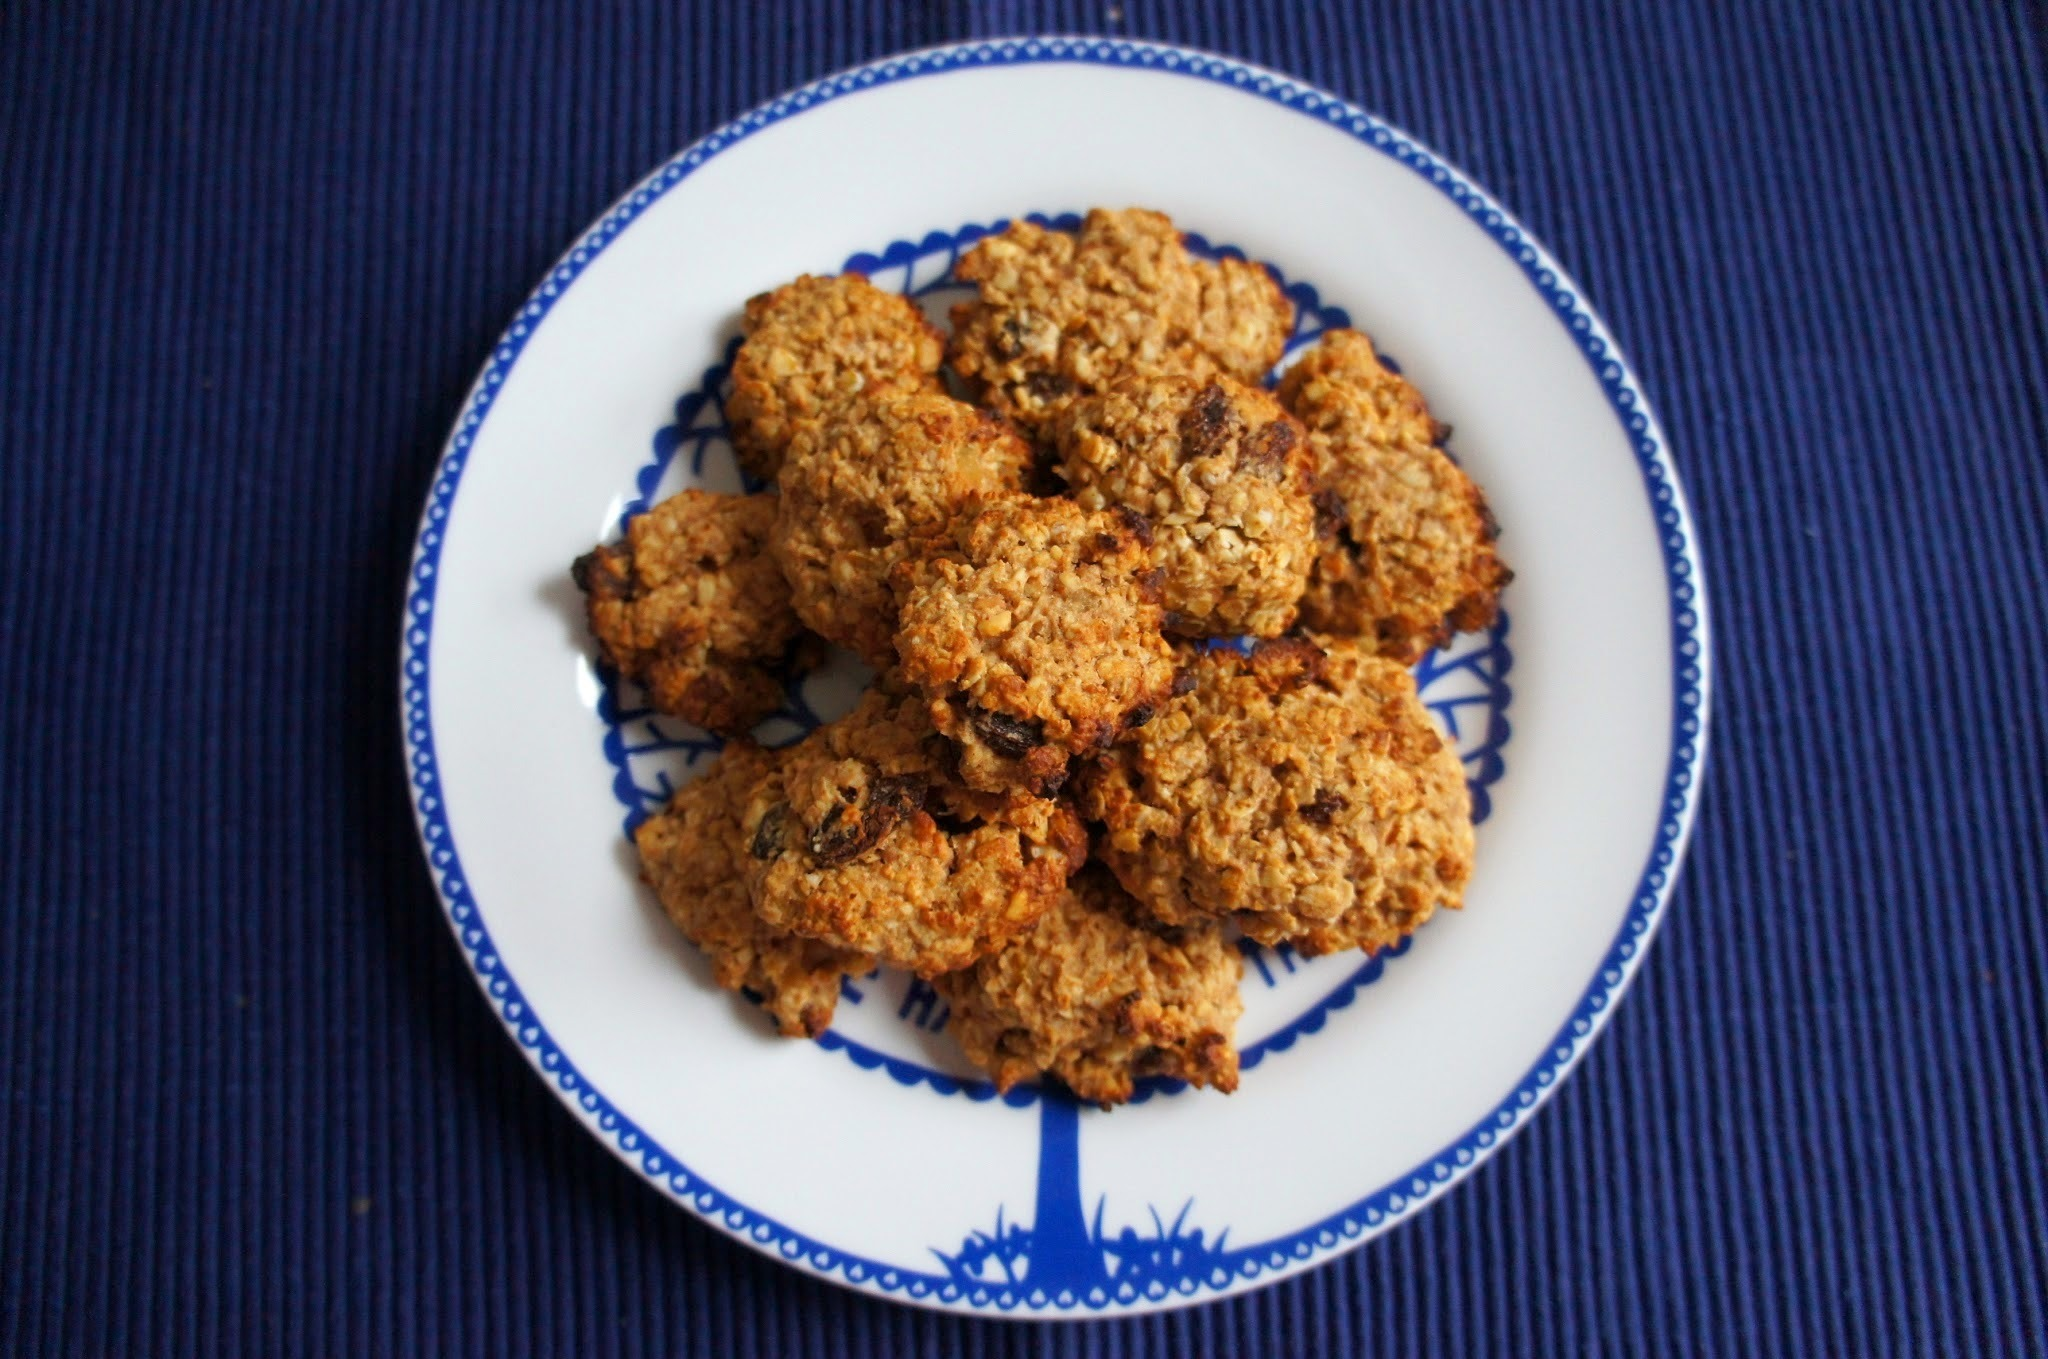 Peanut butter oat and raisin cookies (vegan + gluten free)